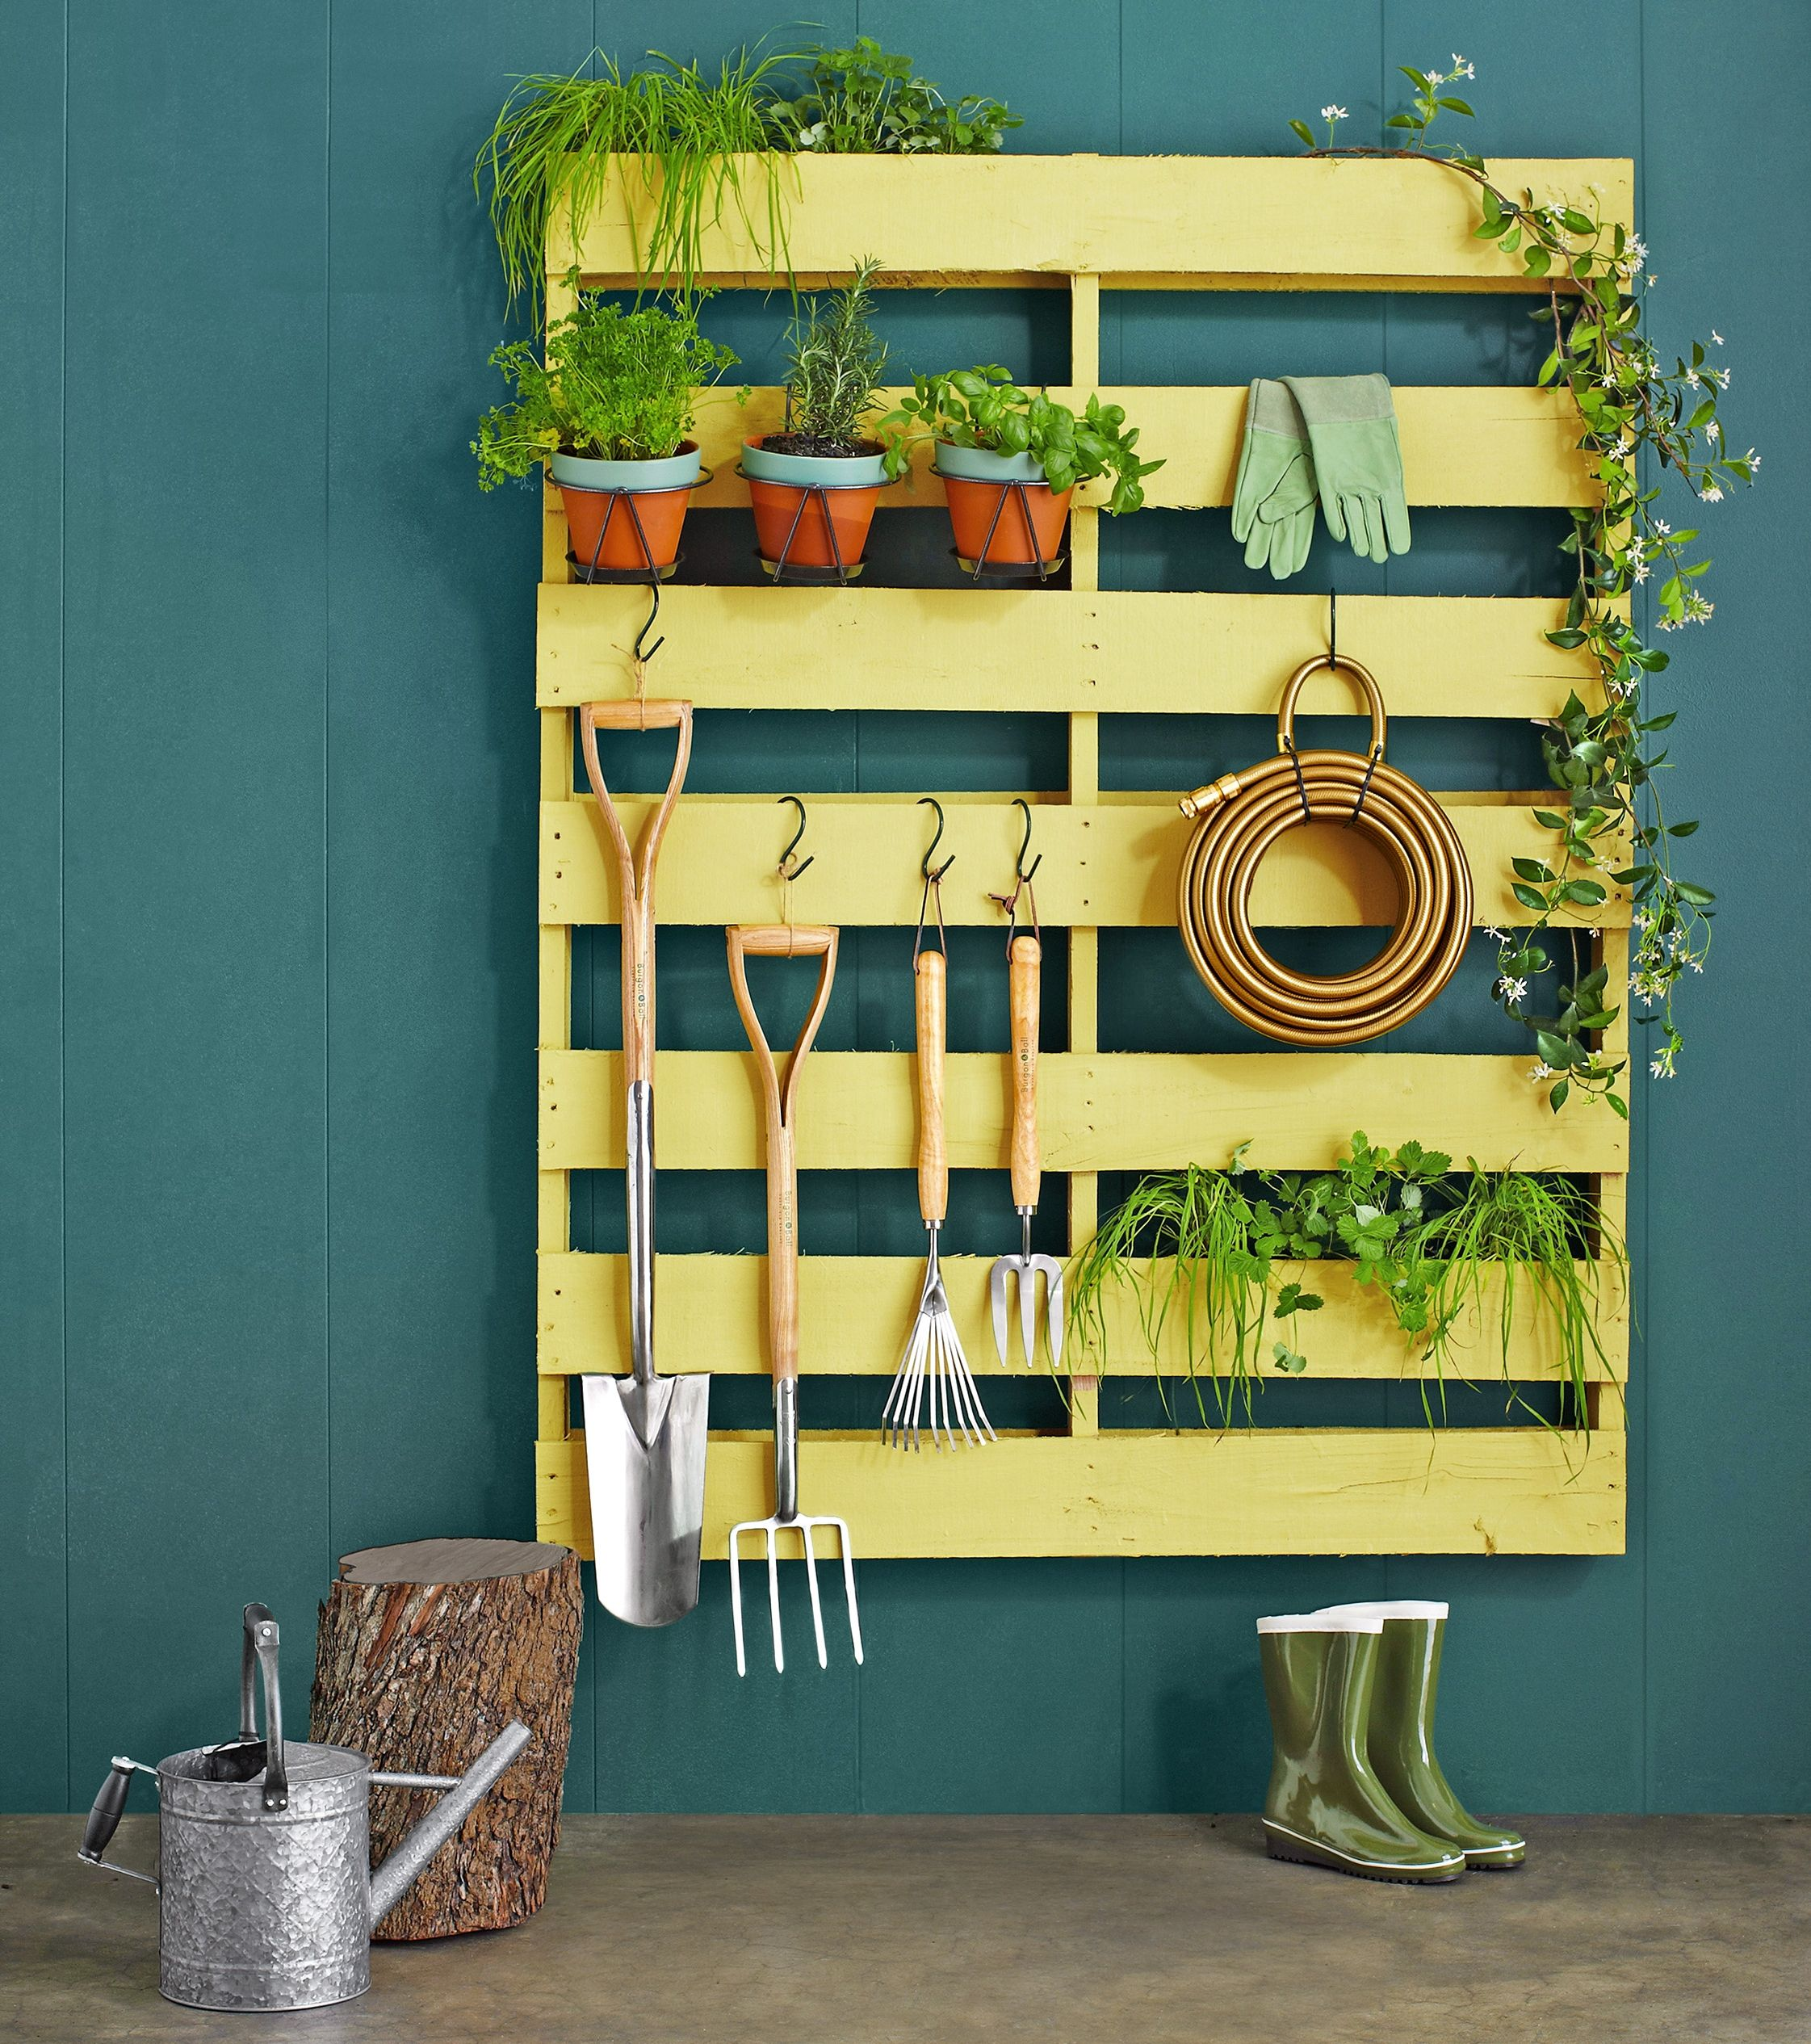 No Need To Spend A Fortune On These: 12 Quick And Clever Home Solutions